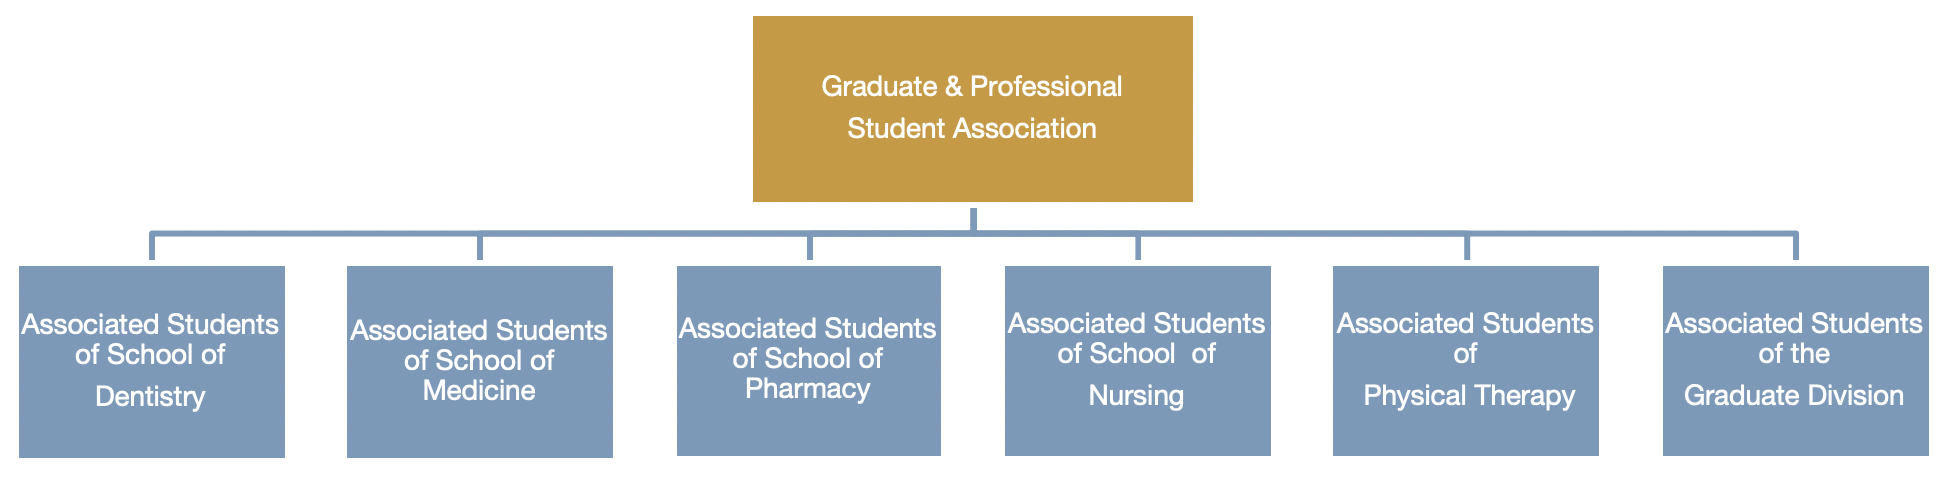 UCSF Student Government Structure Image